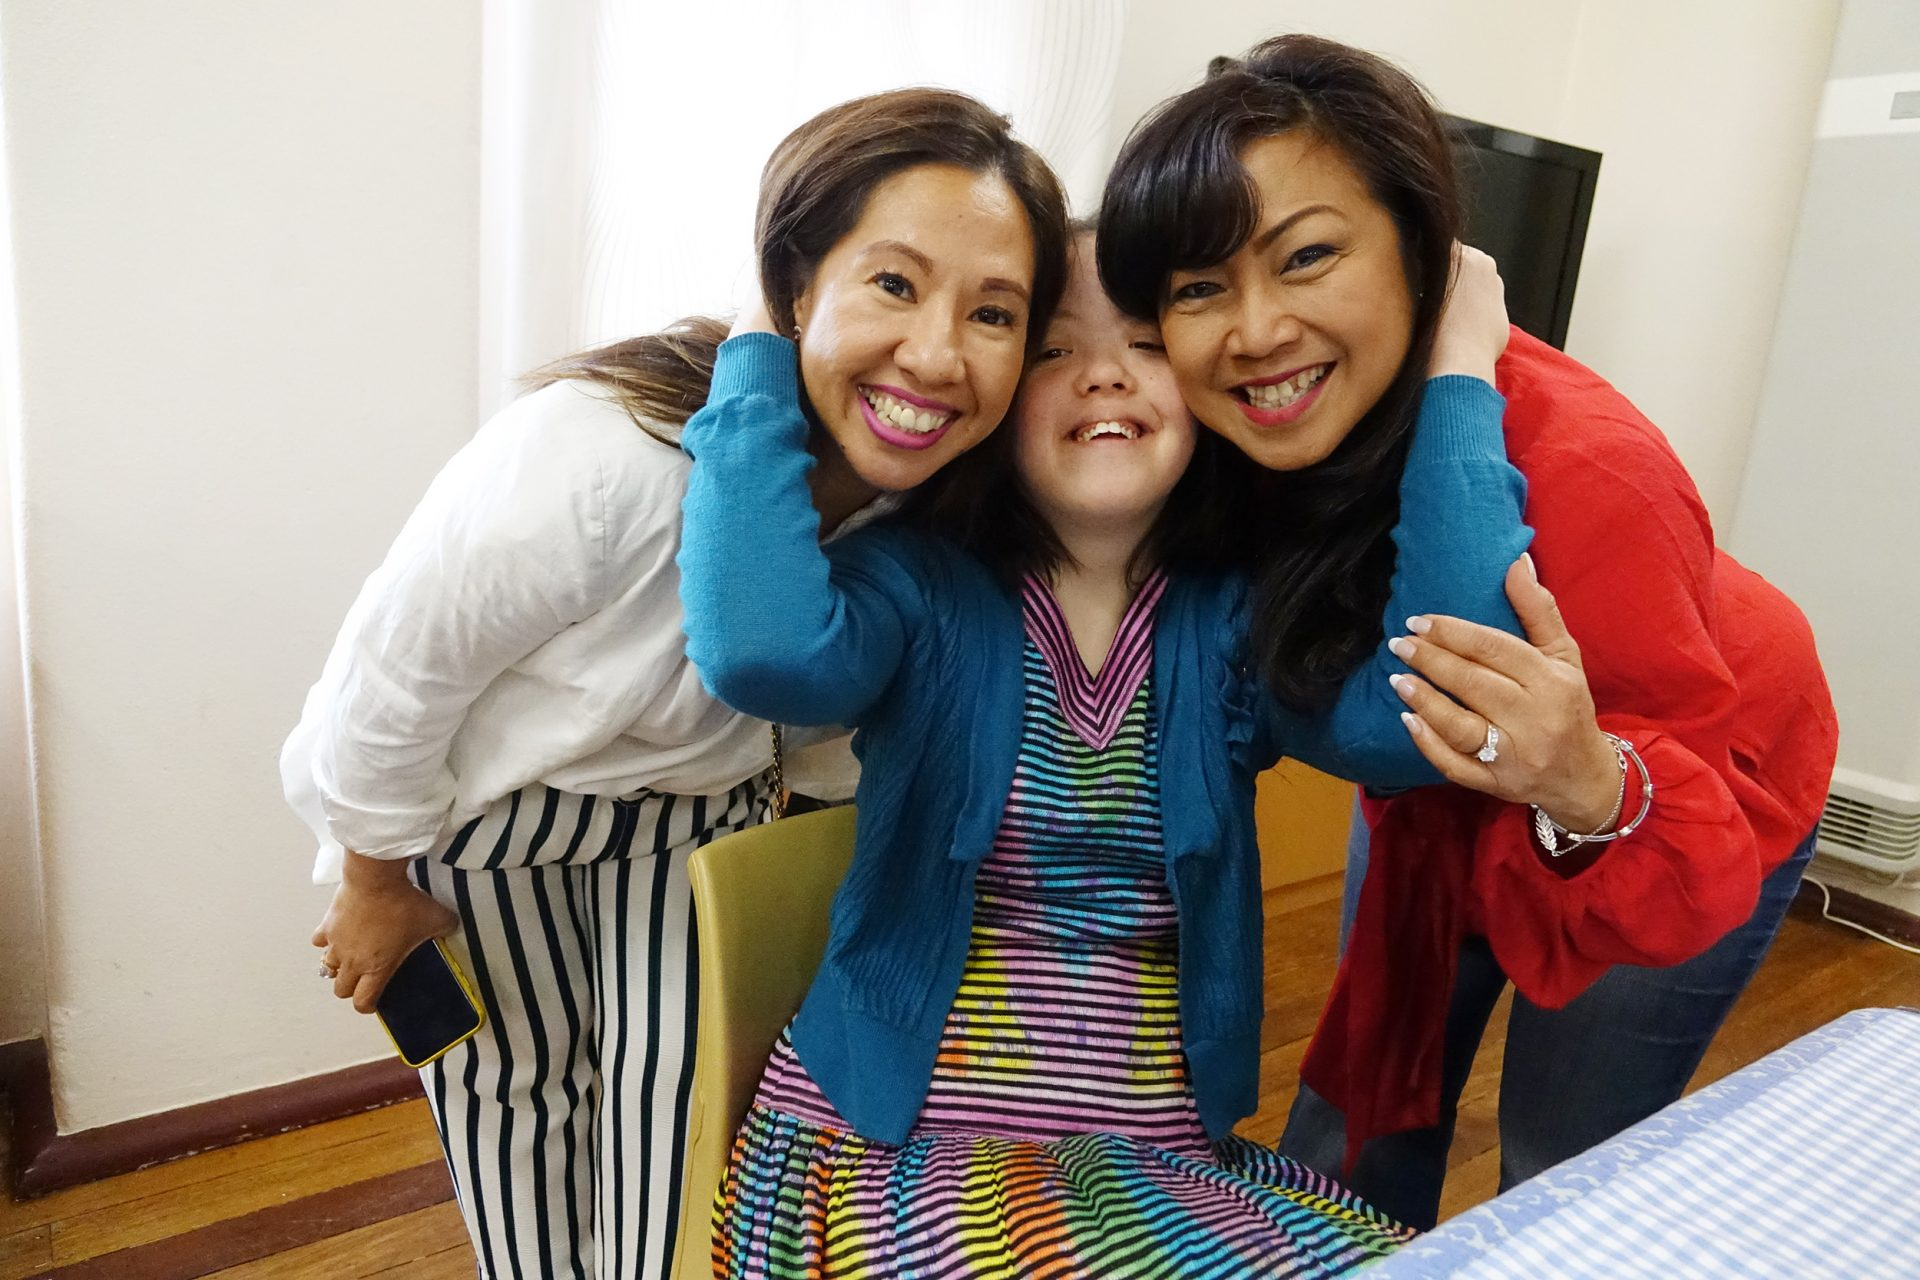 A young woman in a blue jumper is hugging two other women either side of her. They are all smiling and facing the camera.